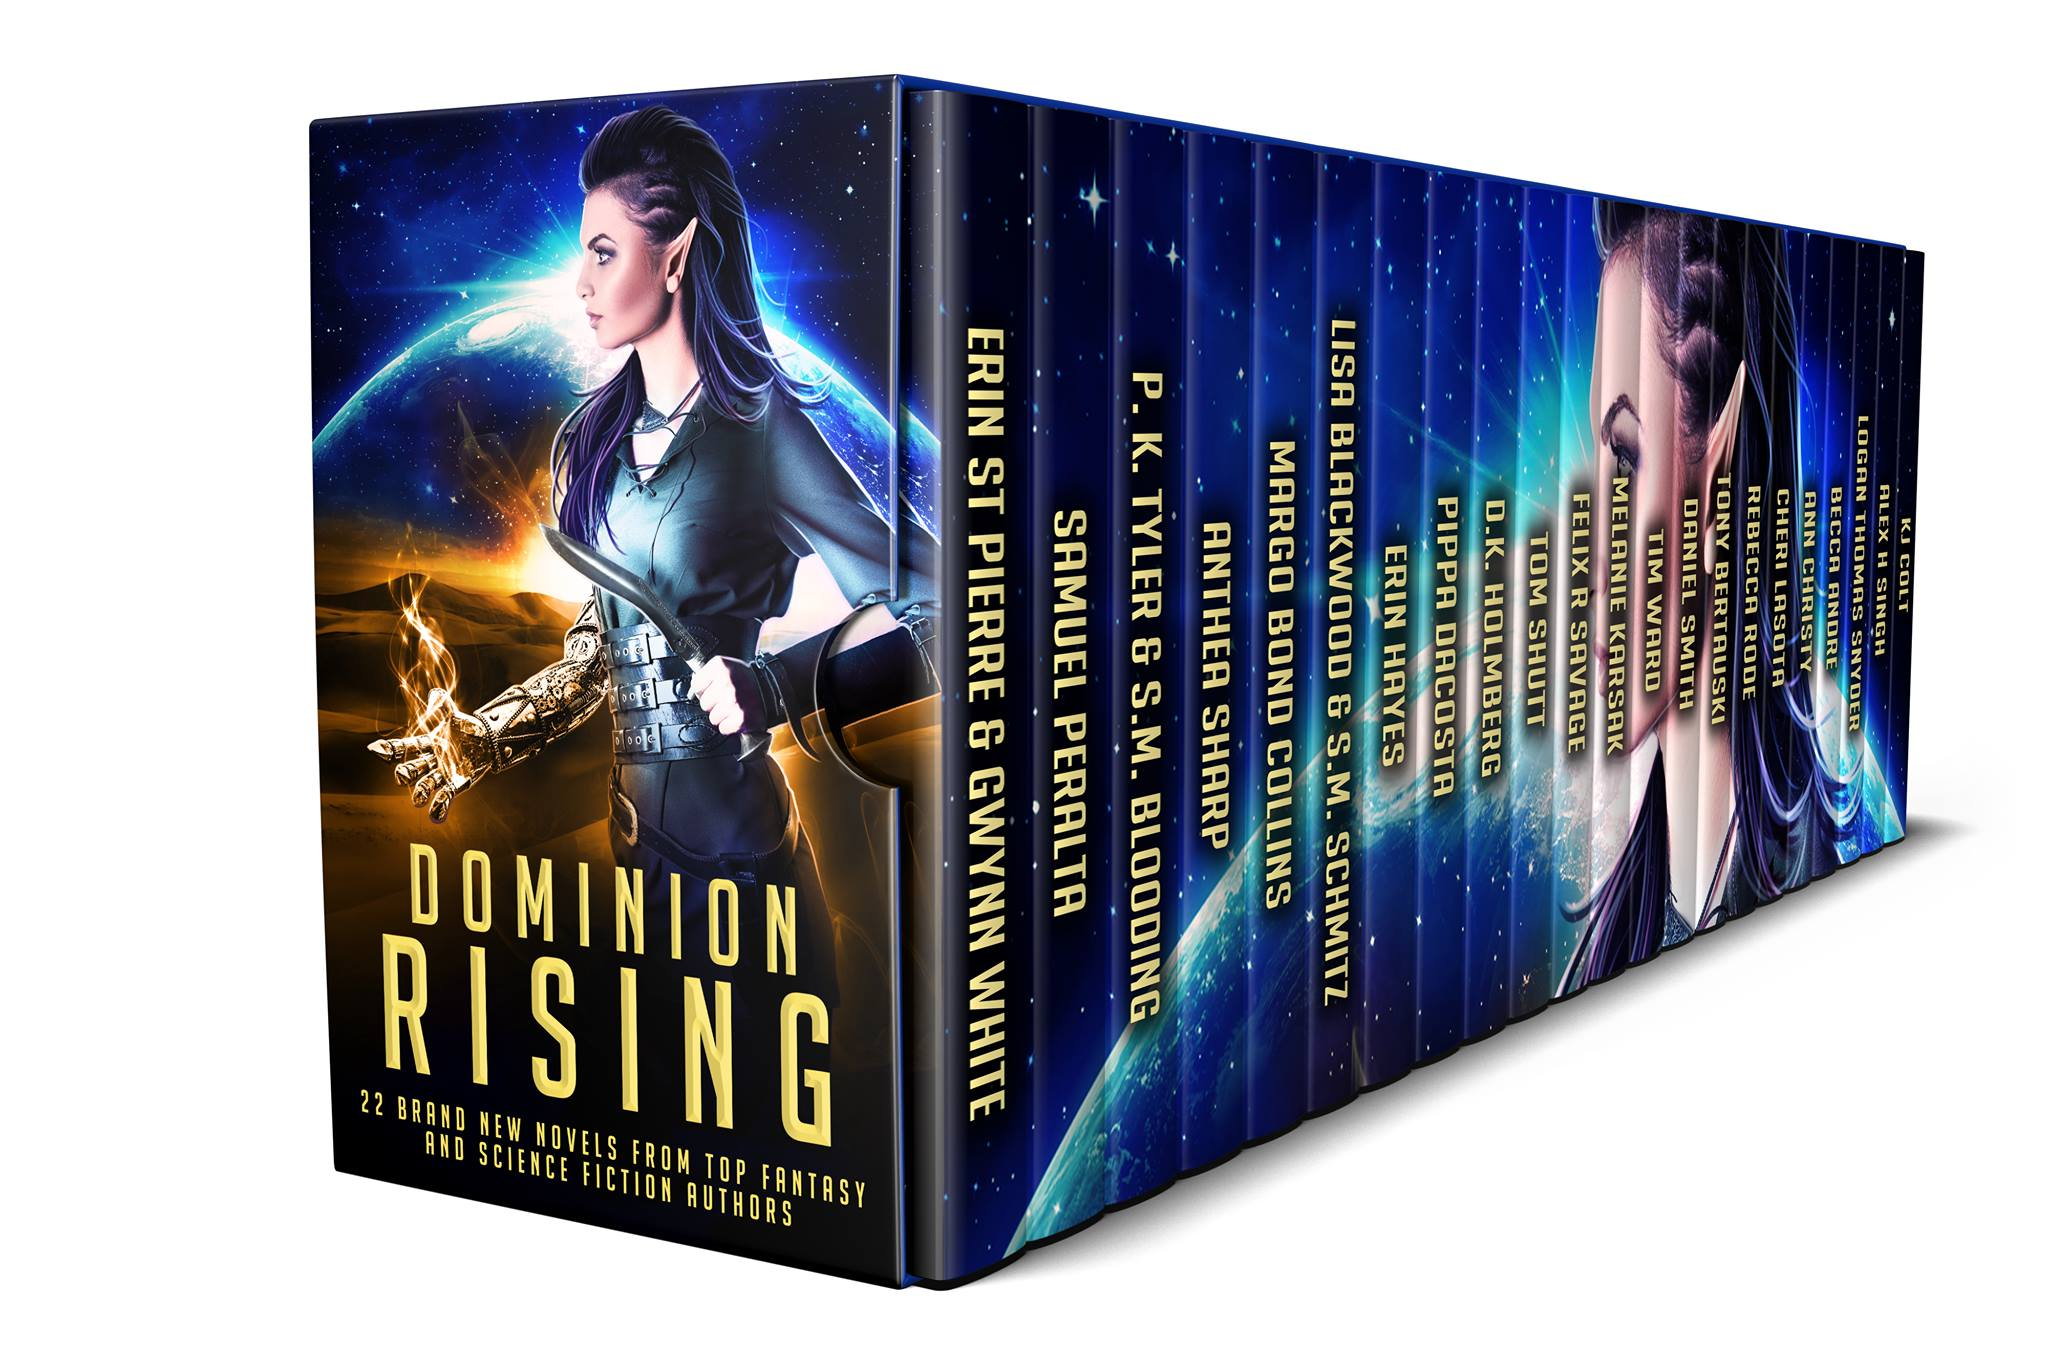 Whether It's Alien Invasion Or Dark Fairytales, Heartpounding Galactic  Adventures Or Cyberpunk Romance, Dominion Rising Will Satisfy With A  Thrilling Mix